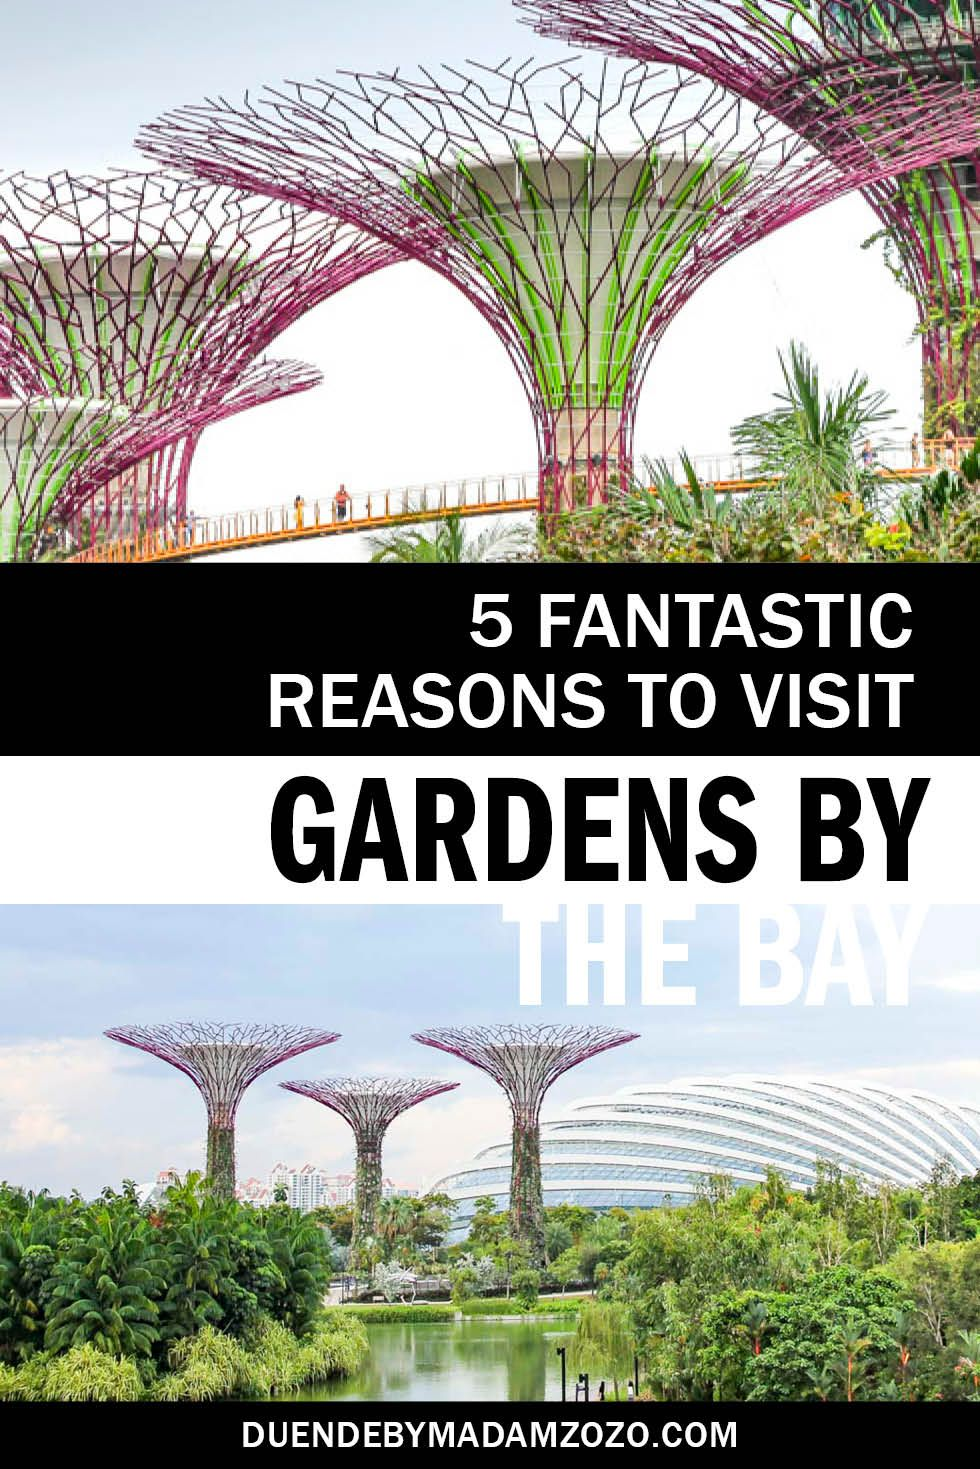 83c5837202ed80dc9f01588850cca77c - Fun Facts About Gardens By The Bay